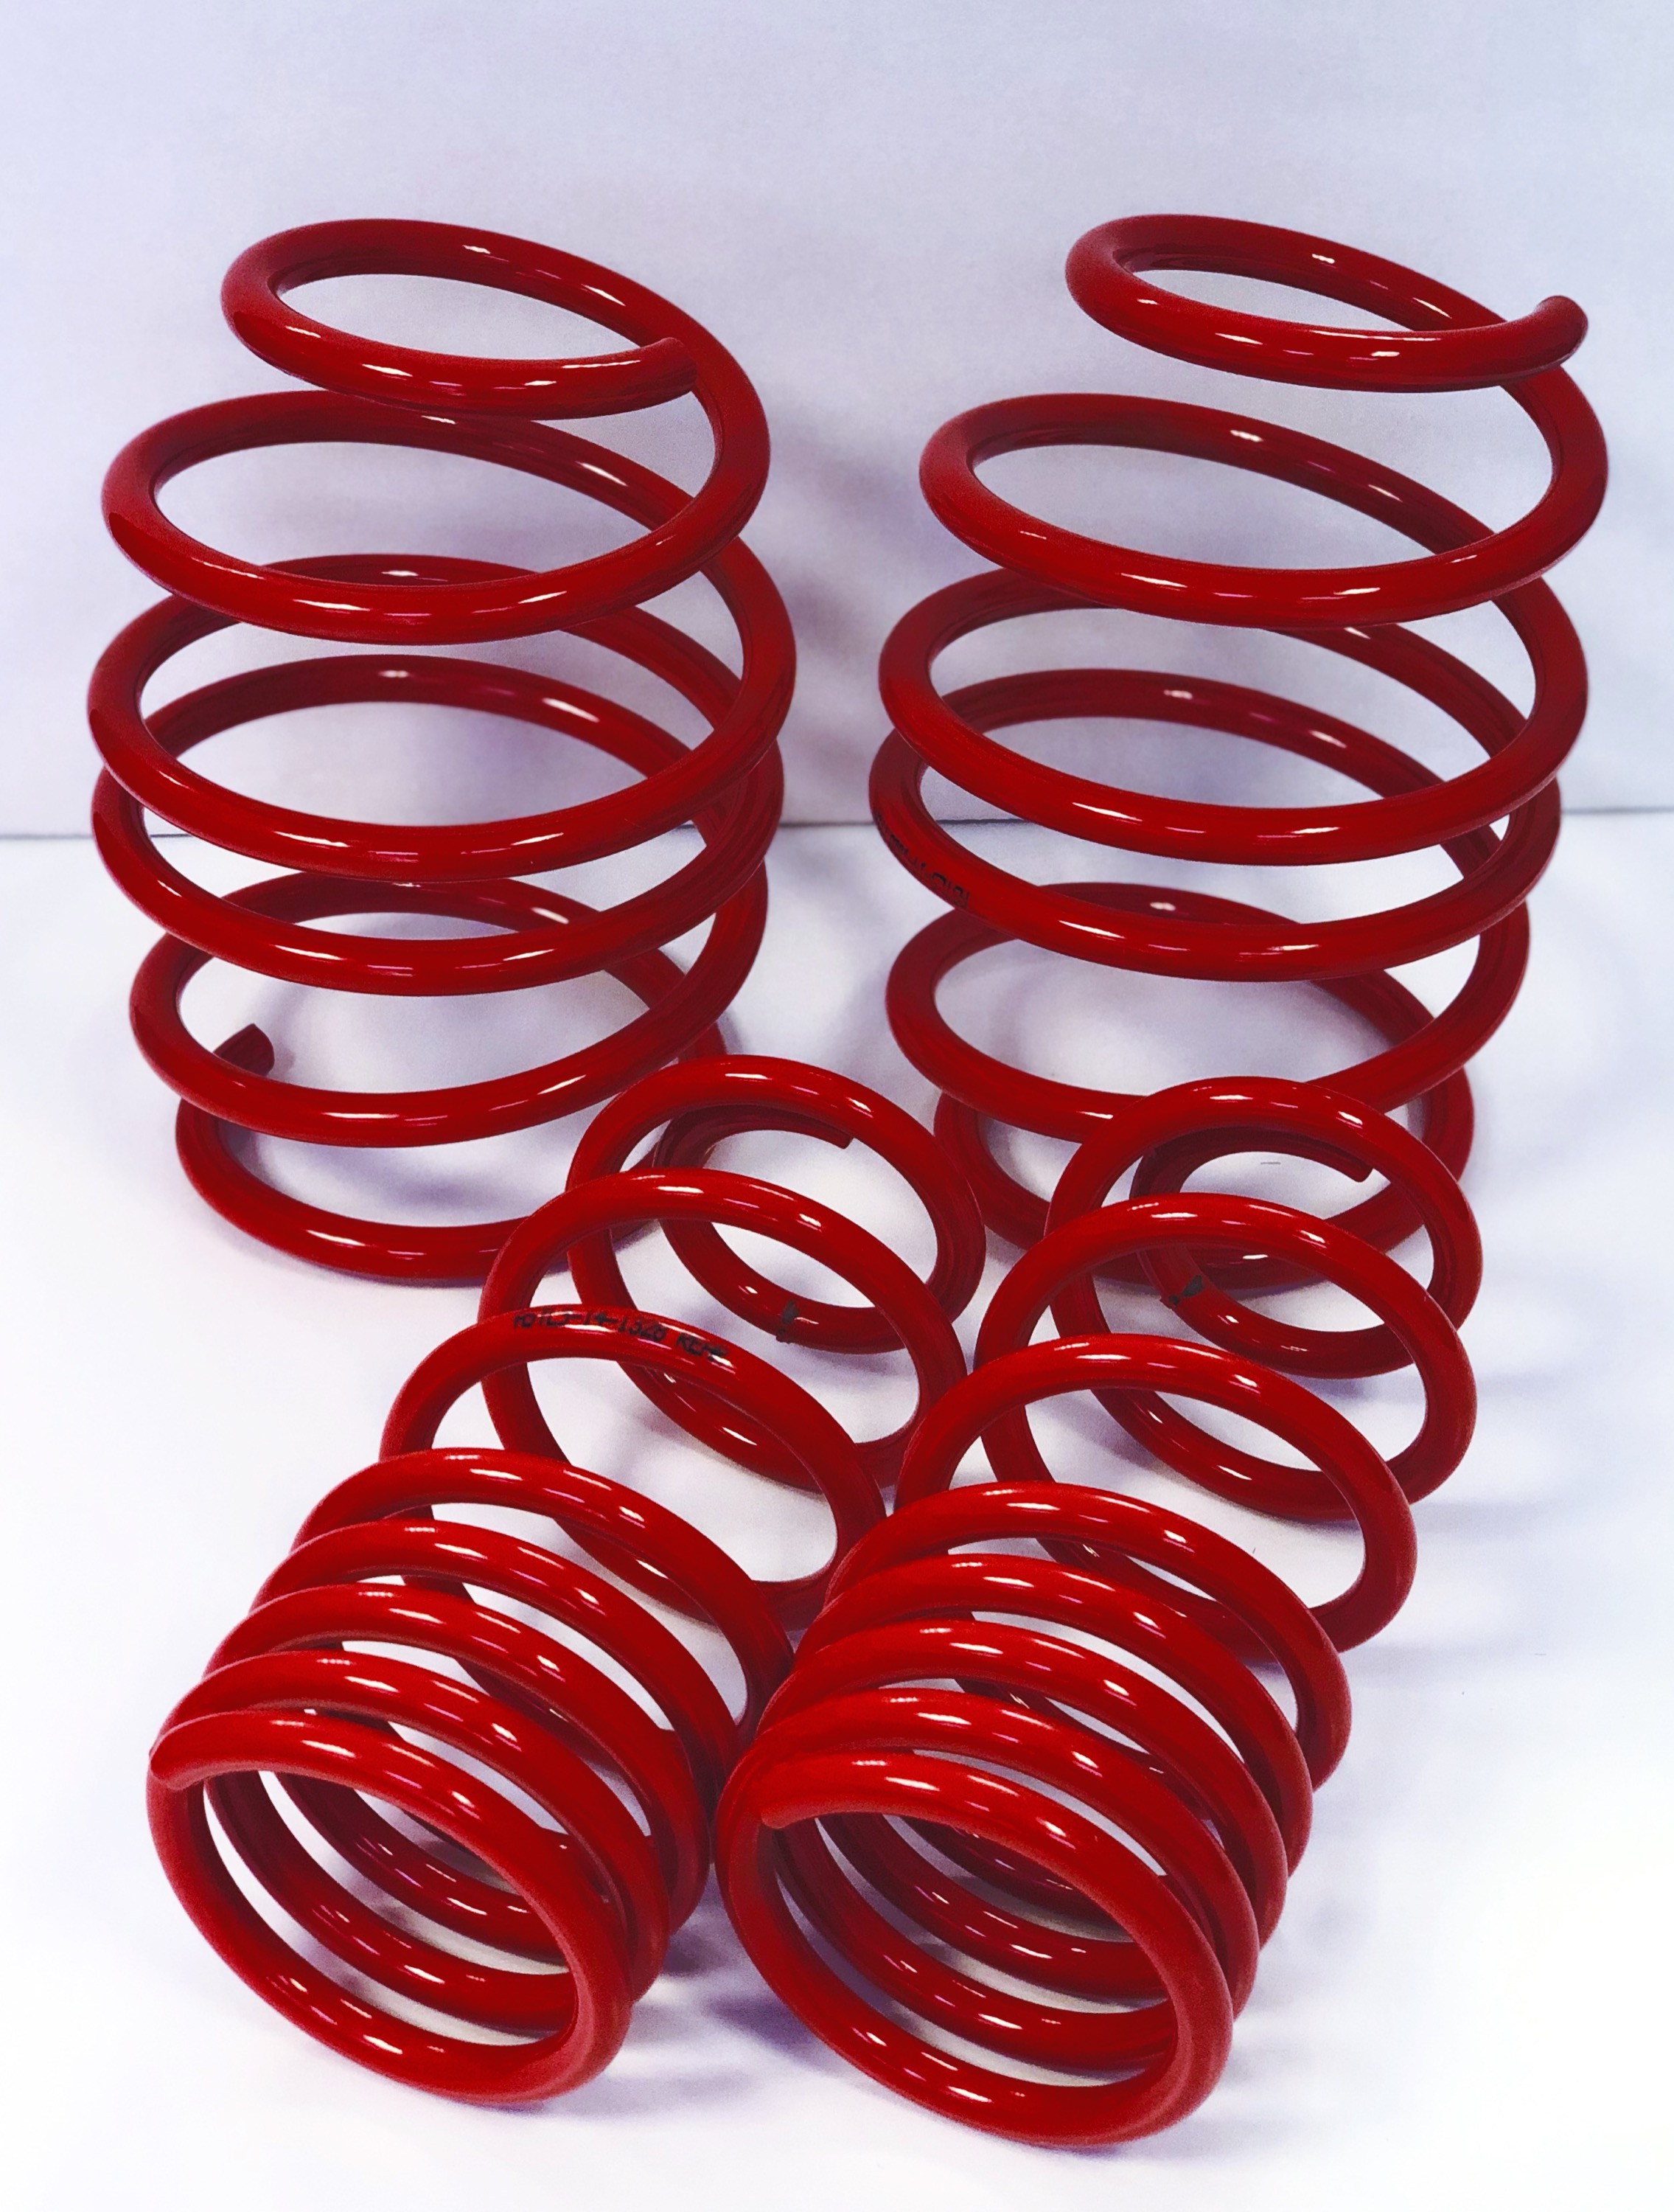 Volkswagen POLO AST Suspension Lowering Springs 25/30